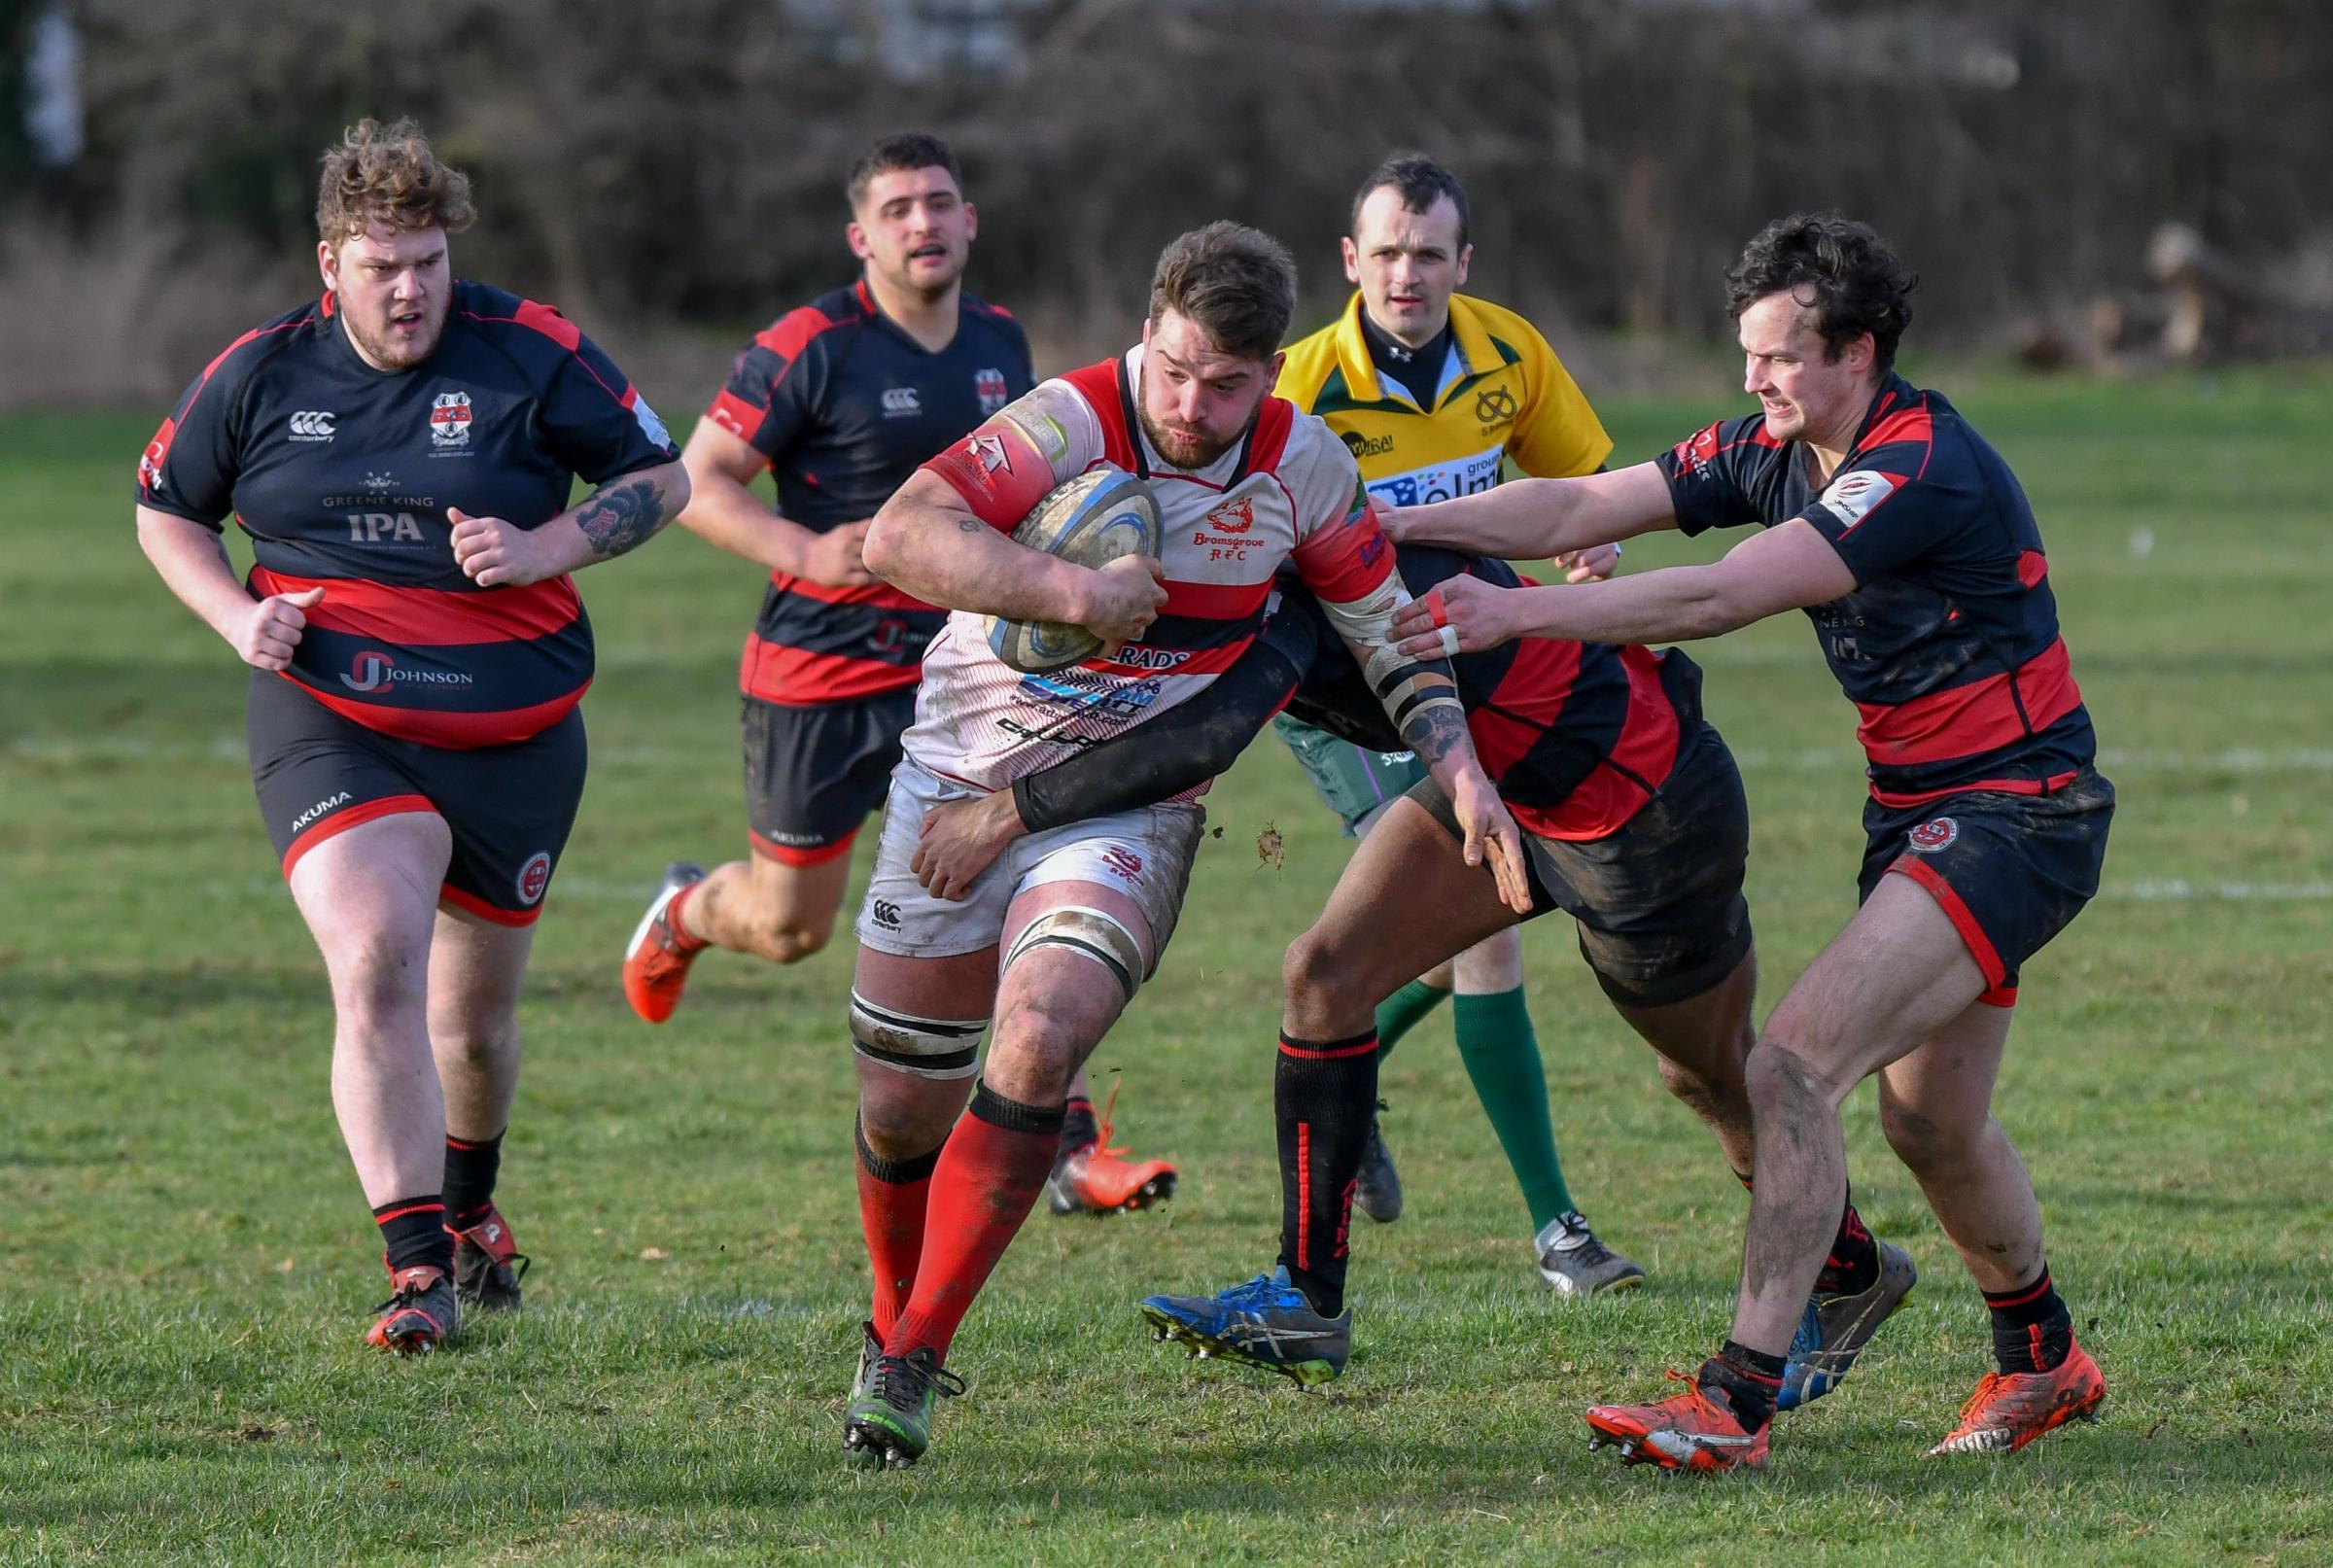 Josh Tomlinson makes a break for the Boars. Photo by Andy Jepson.